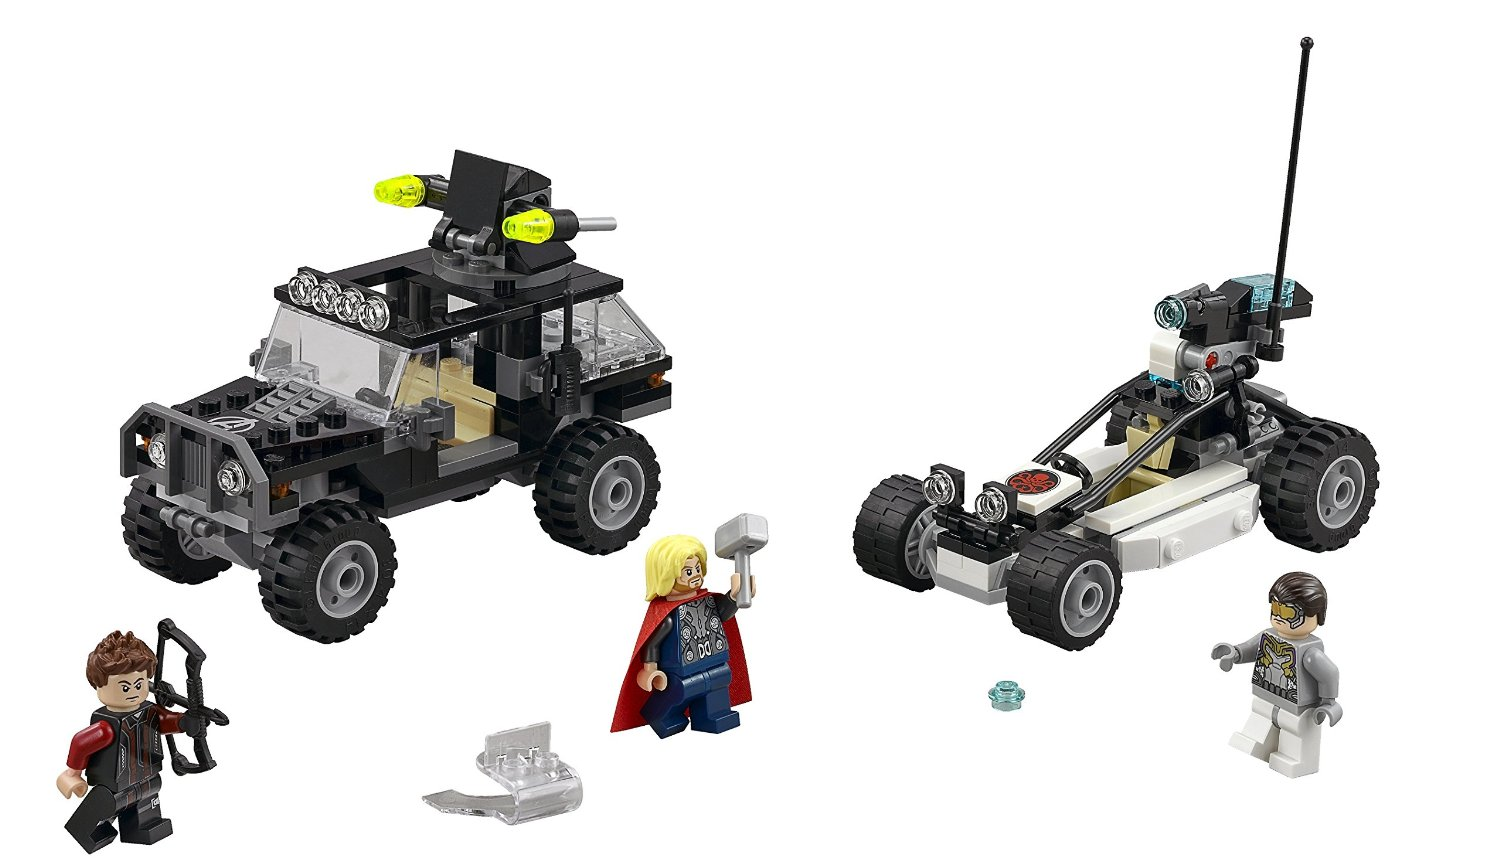 helicopter ww2 with New Summer Lego Marvel Set Images And Descriptions Posted To Argos And German Lego Catalog on 1 72 Wwii Us Infantry Winter Uniform 510006133 En together with Humber Scout Car also Watch besides J 20 3rd Prototype  parison further Mercedes Benz L4500a Truck 1941.